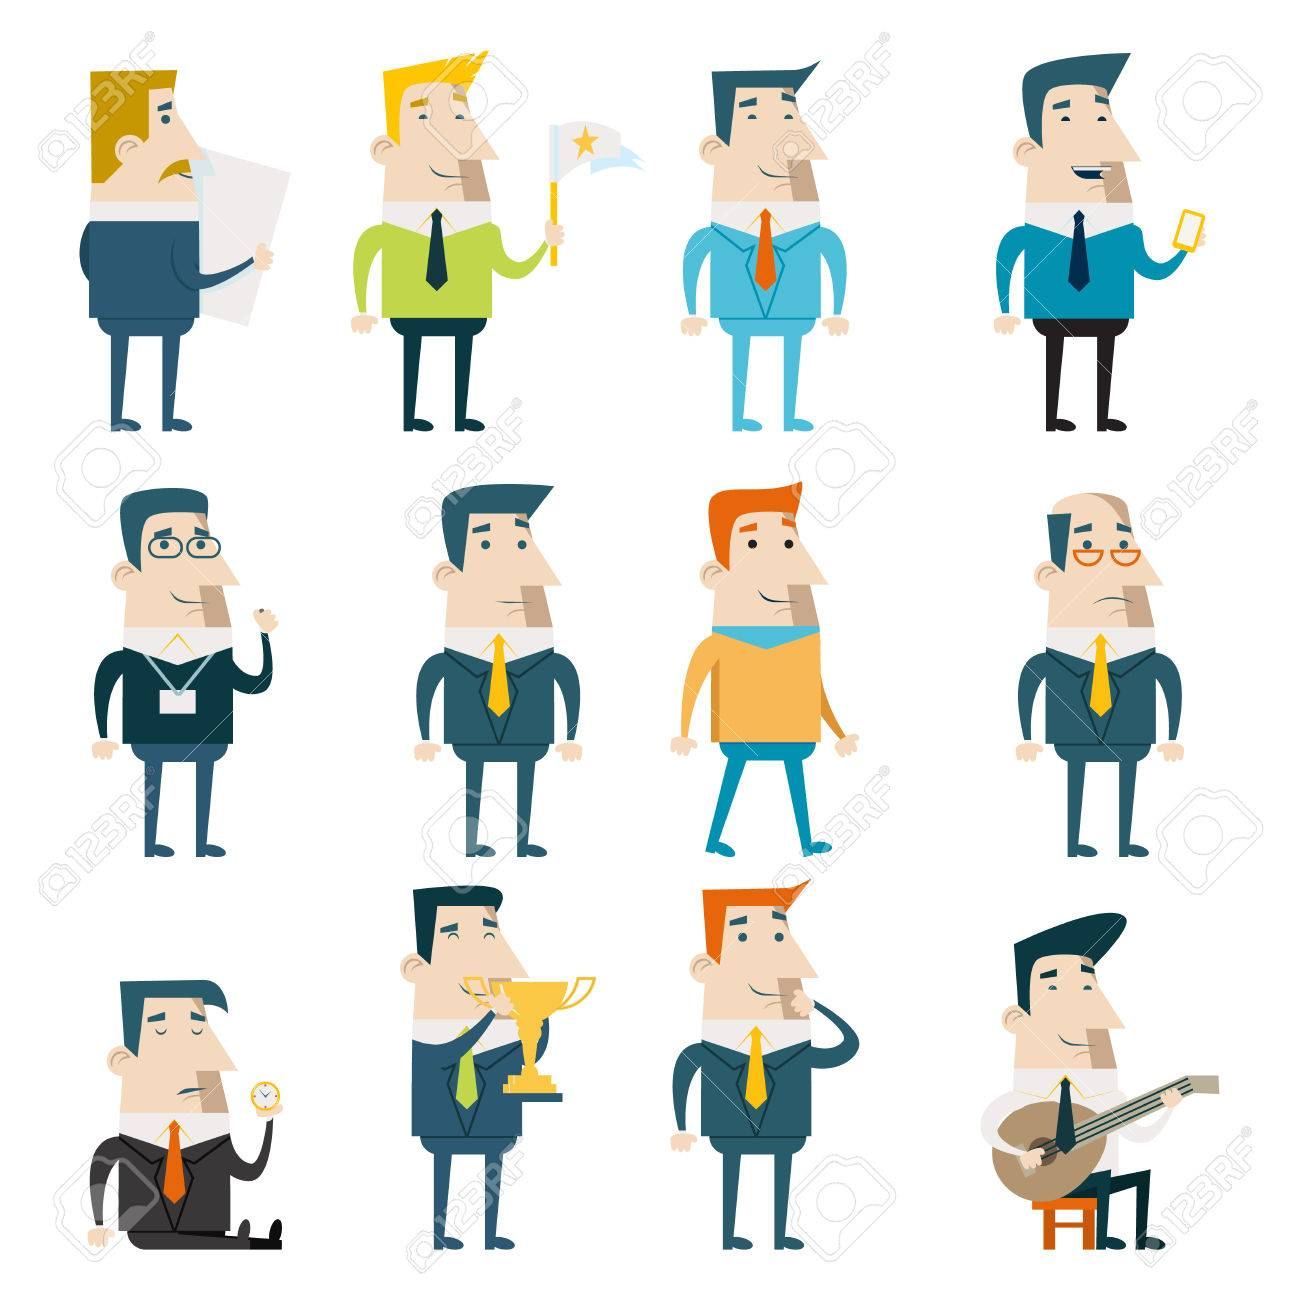 businessman cartoon characters business marketing icons set concept